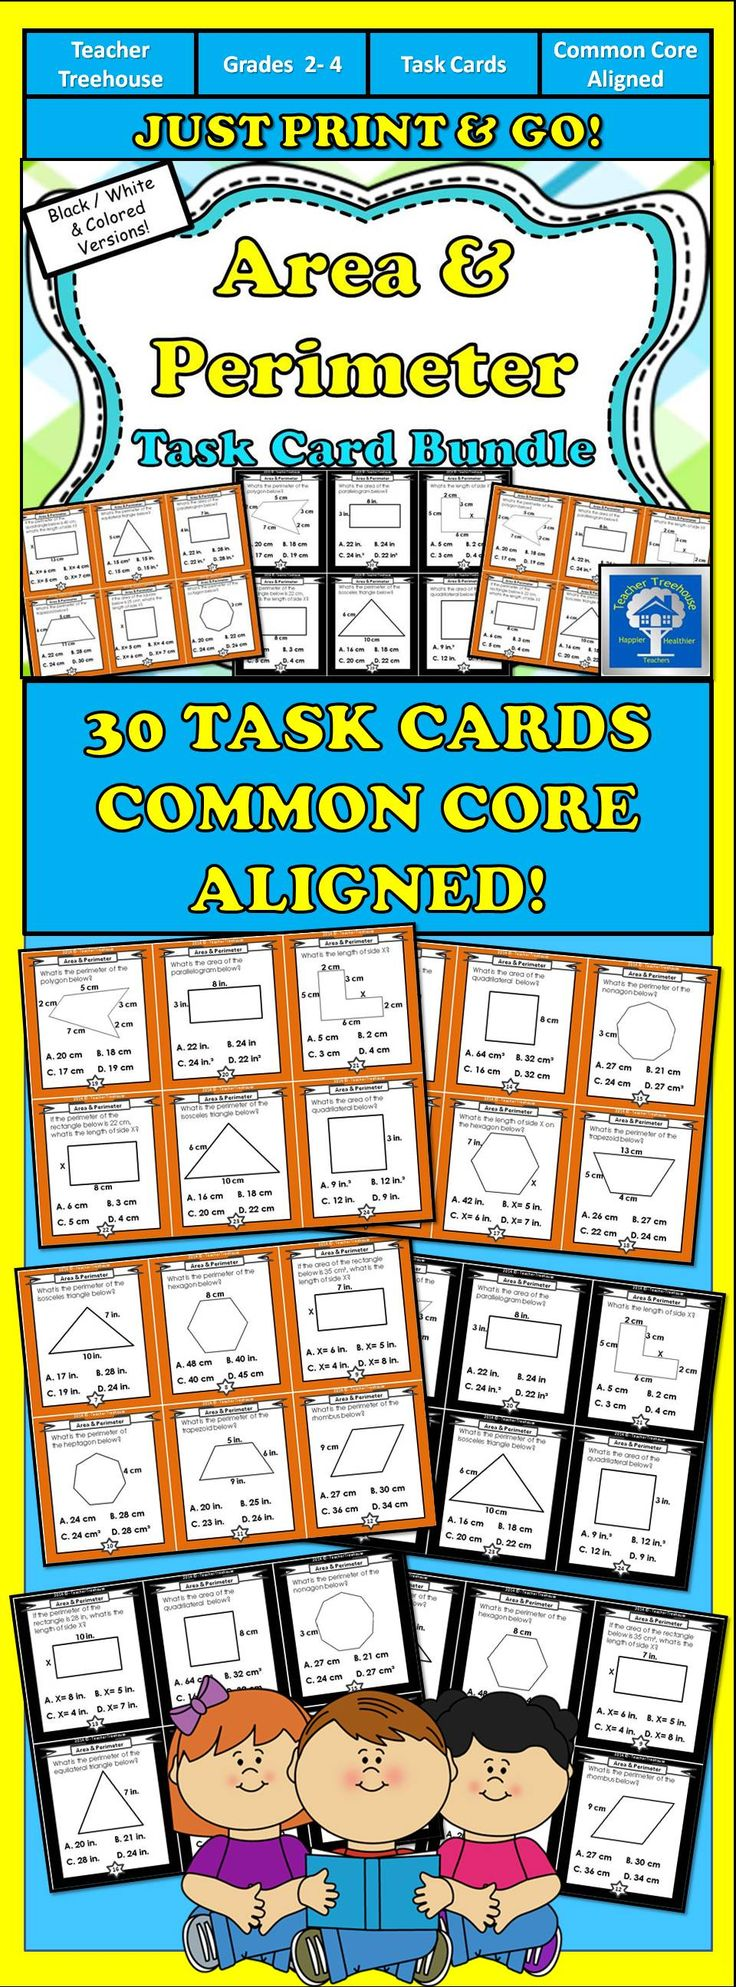 This set of task cards is designed to help your students determine area and perimeter of various geometric shapes.Students will practice: - Identifying the length of a missing side - Determining correct unit labels - Using multiplication to determine the area of a quadrilateral - Associating names of geometric shapes with the number of sides and types of angles - Naming equilateral and isosceles triangles. Task cards have abundant uses and are a valuable resource for any classroom!